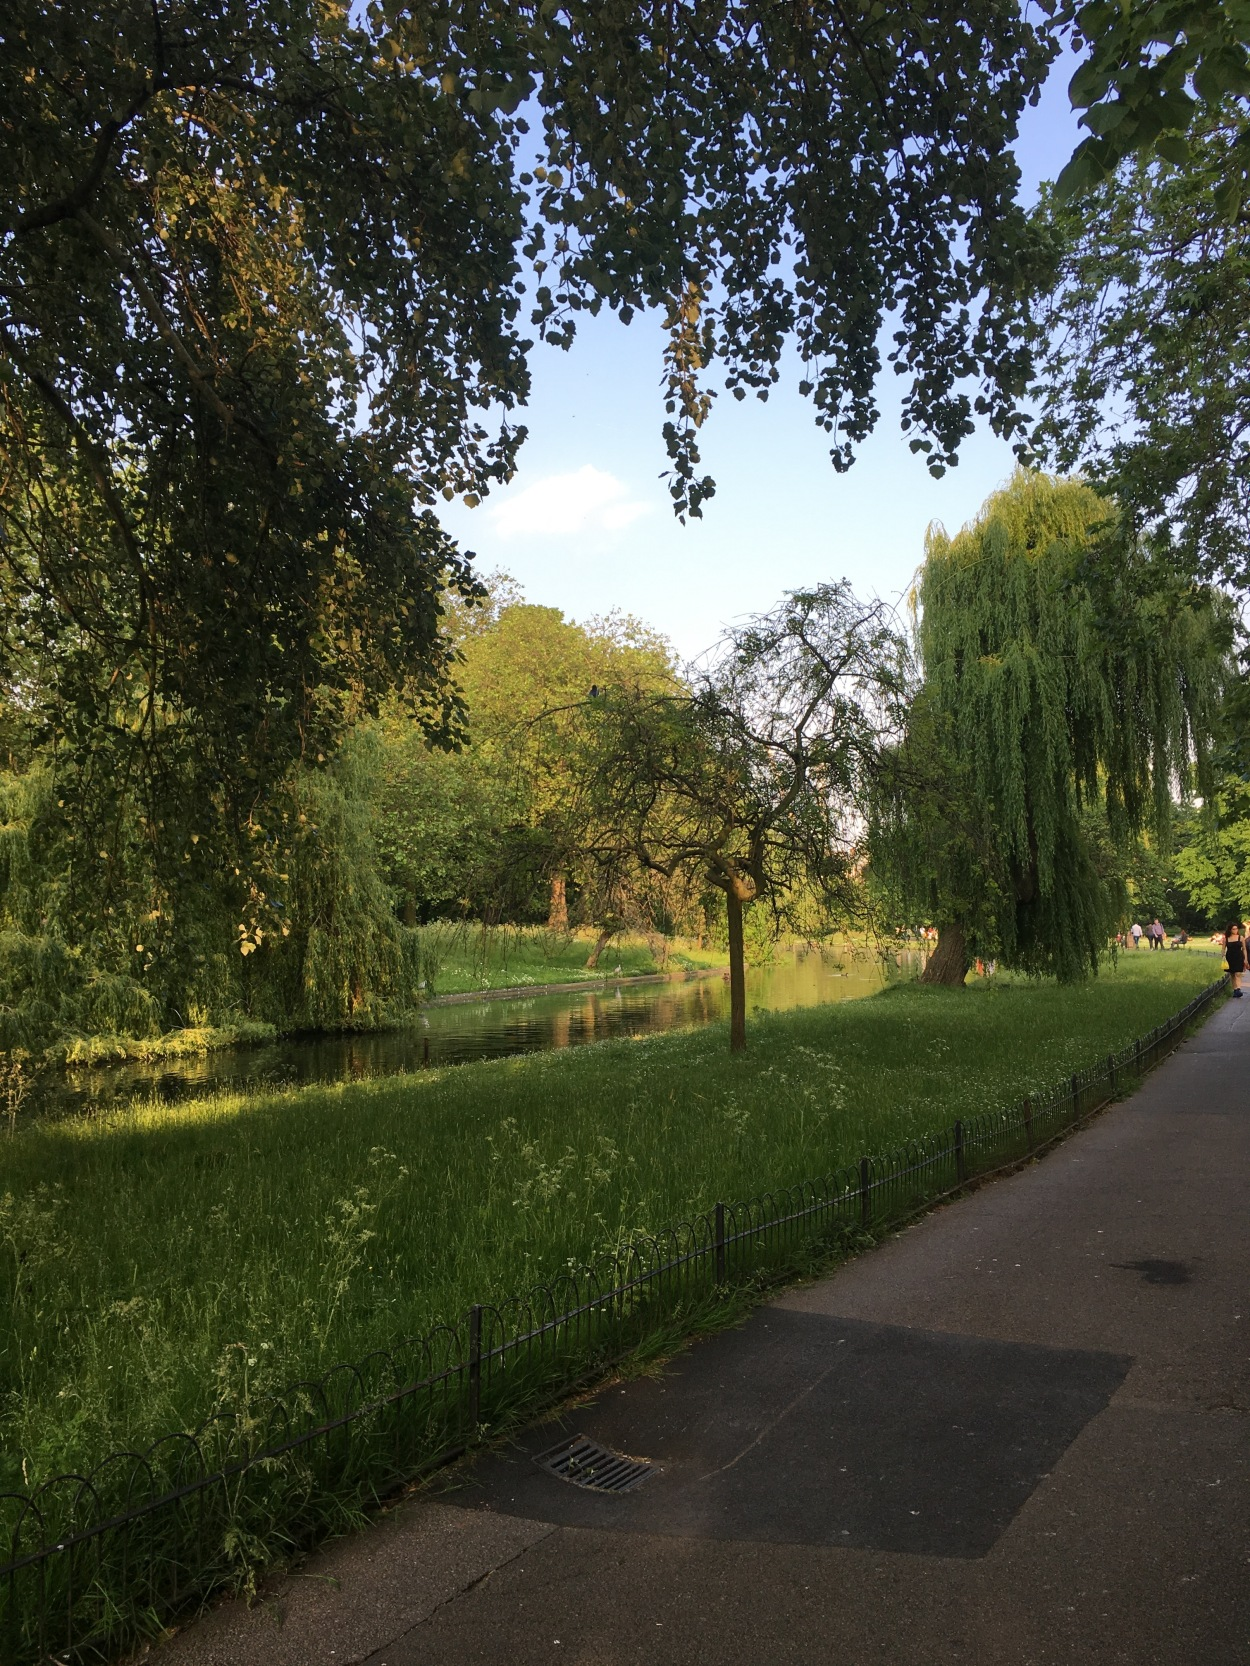 This park, Regent's Park, is right outside my flat! It was a beautiful day for a walk.